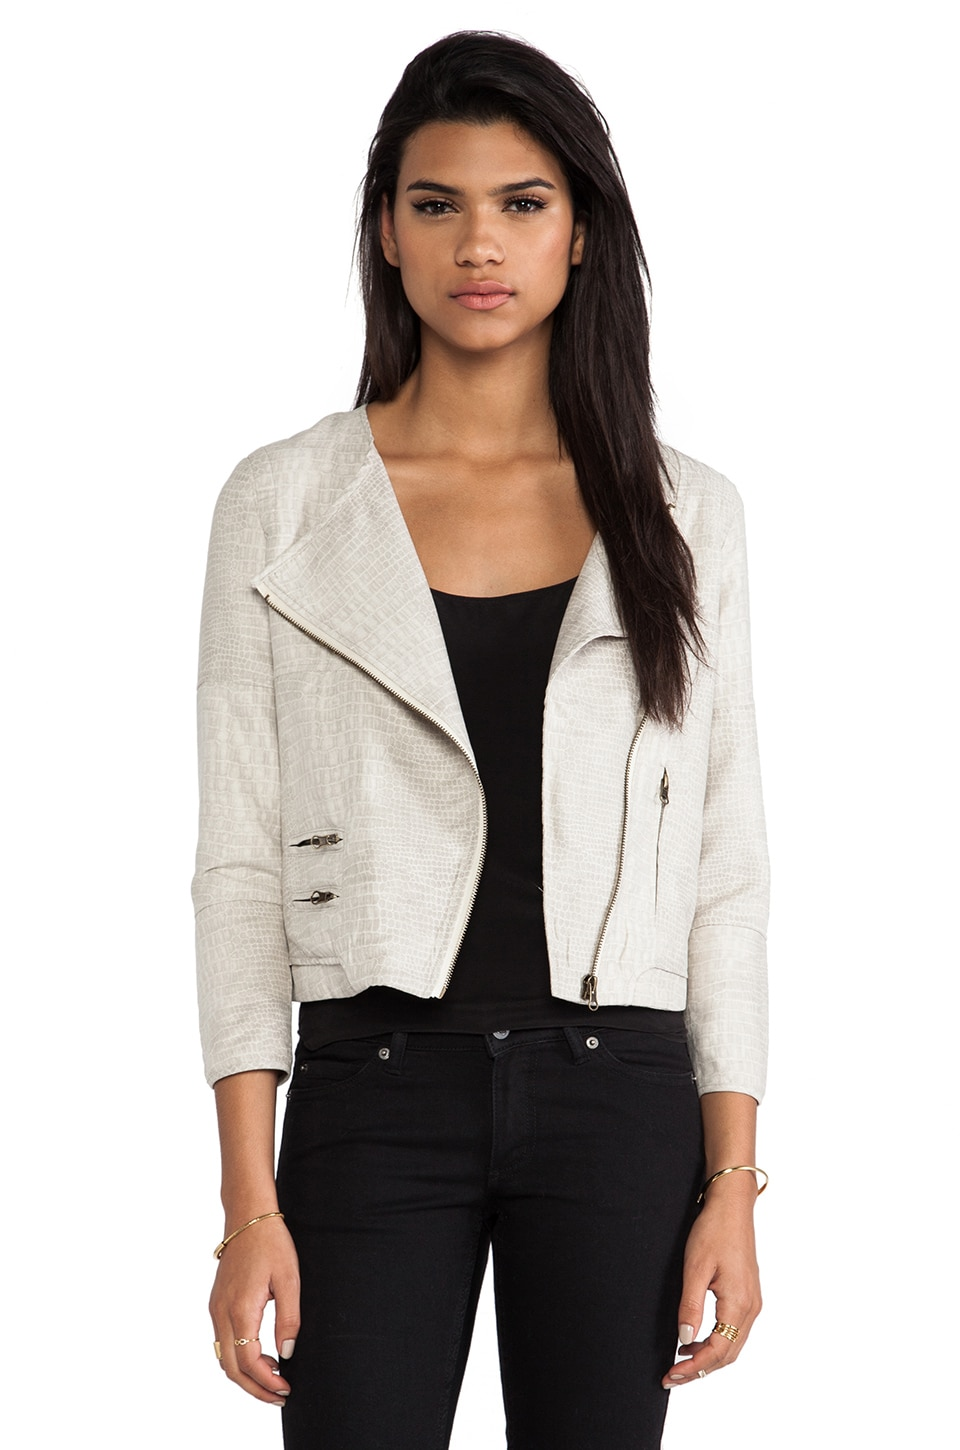 Capulet Collarless Moto Jacket in Light Croc Print